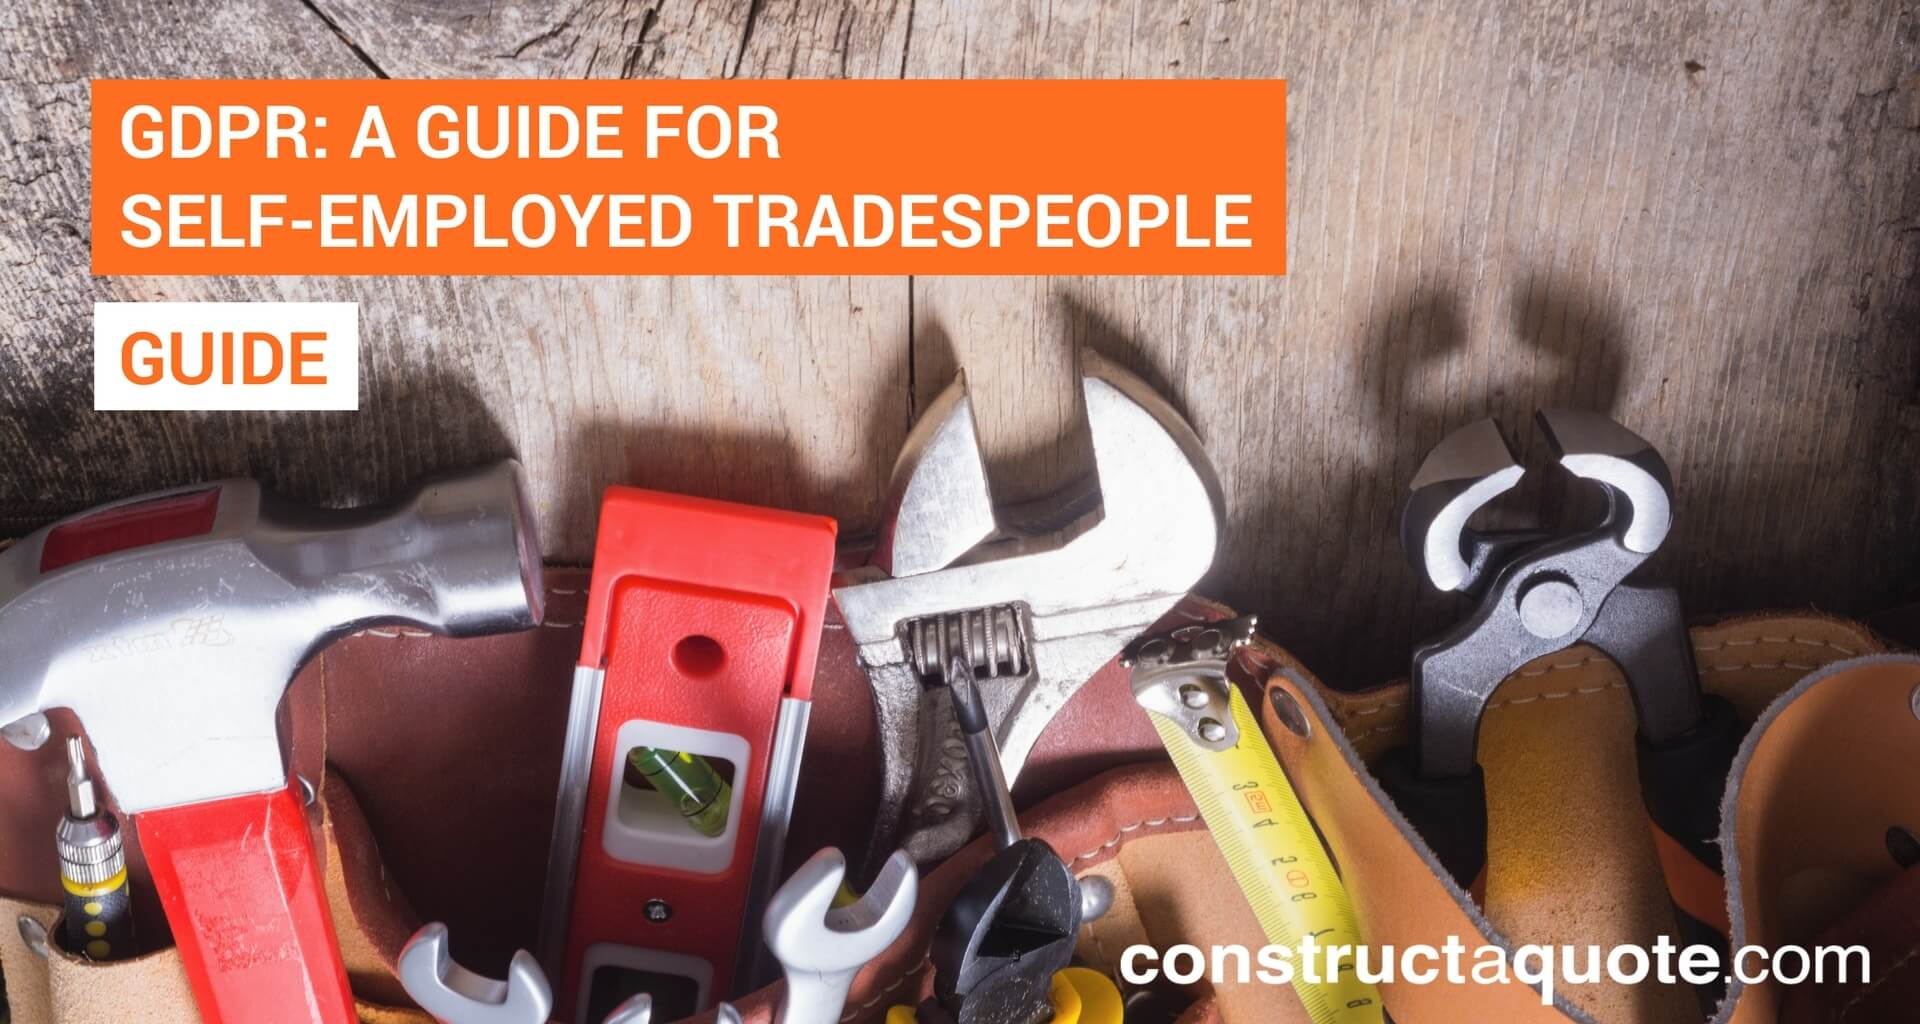 GDPR: A Guide for Self-Employed Tradespeople